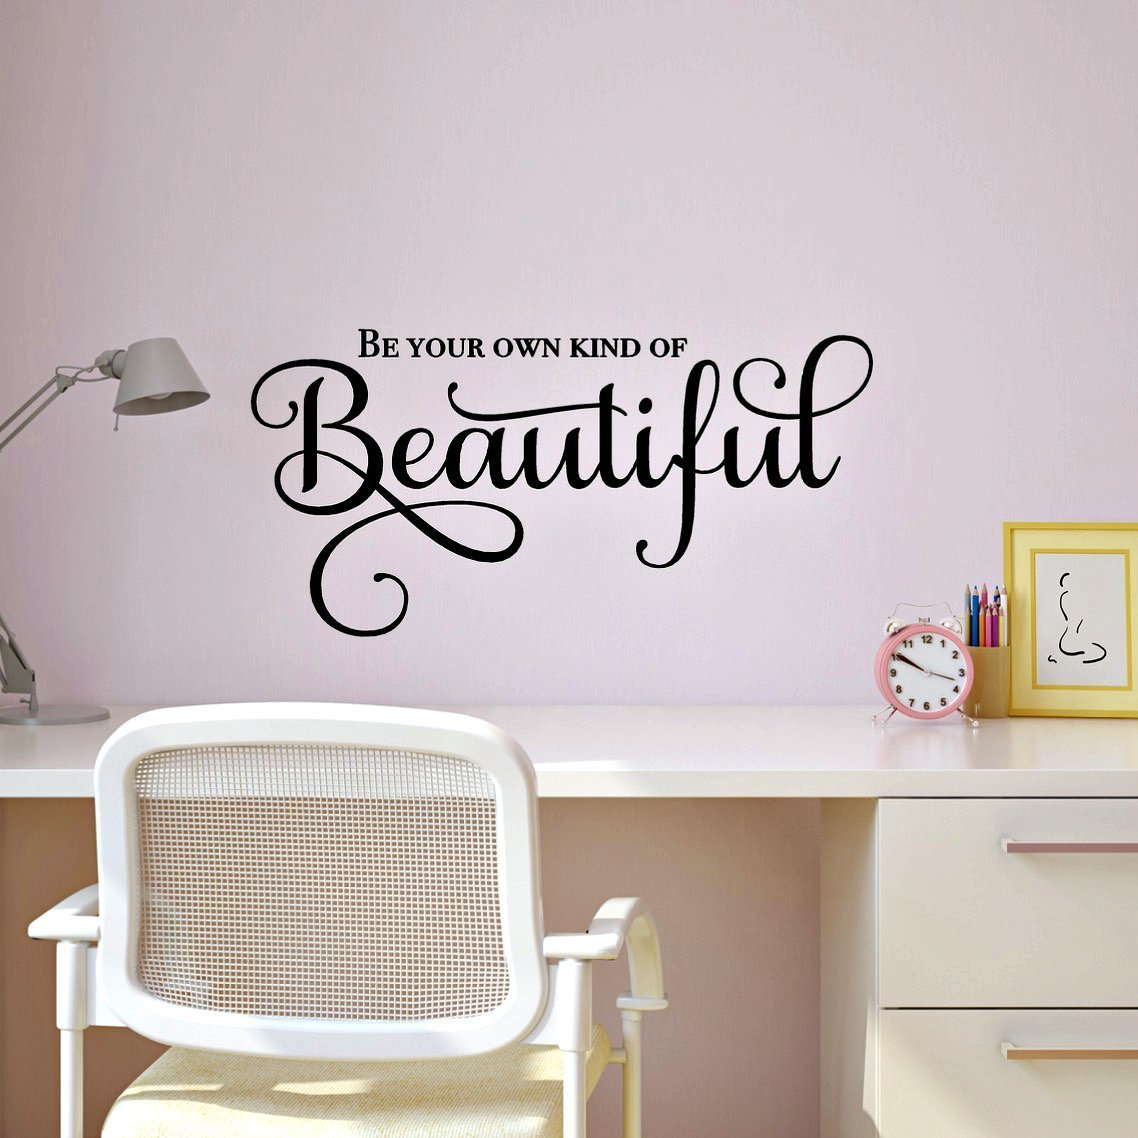 Amazon be your own kind of beautiful inspirational wall decal amazon be your own kind of beautiful inspirational wall decal mirror quote wall decor 24w x 115h black handmade amipublicfo Choice Image